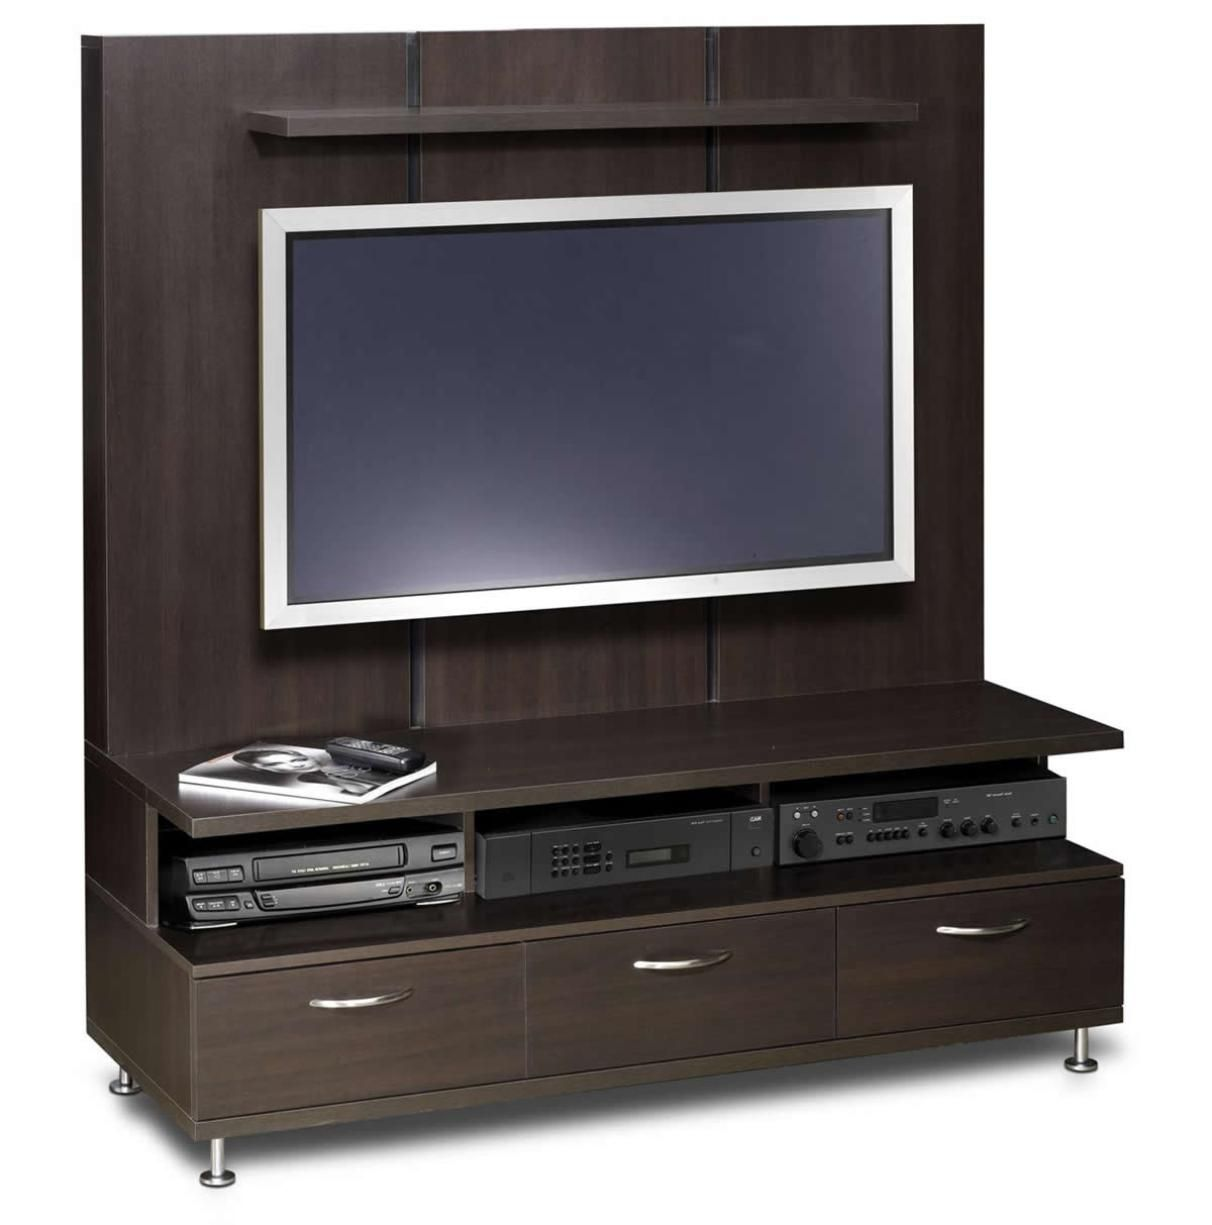 elegant in product elegan furniture wood pj console cabinet modern tv cabinets teak design